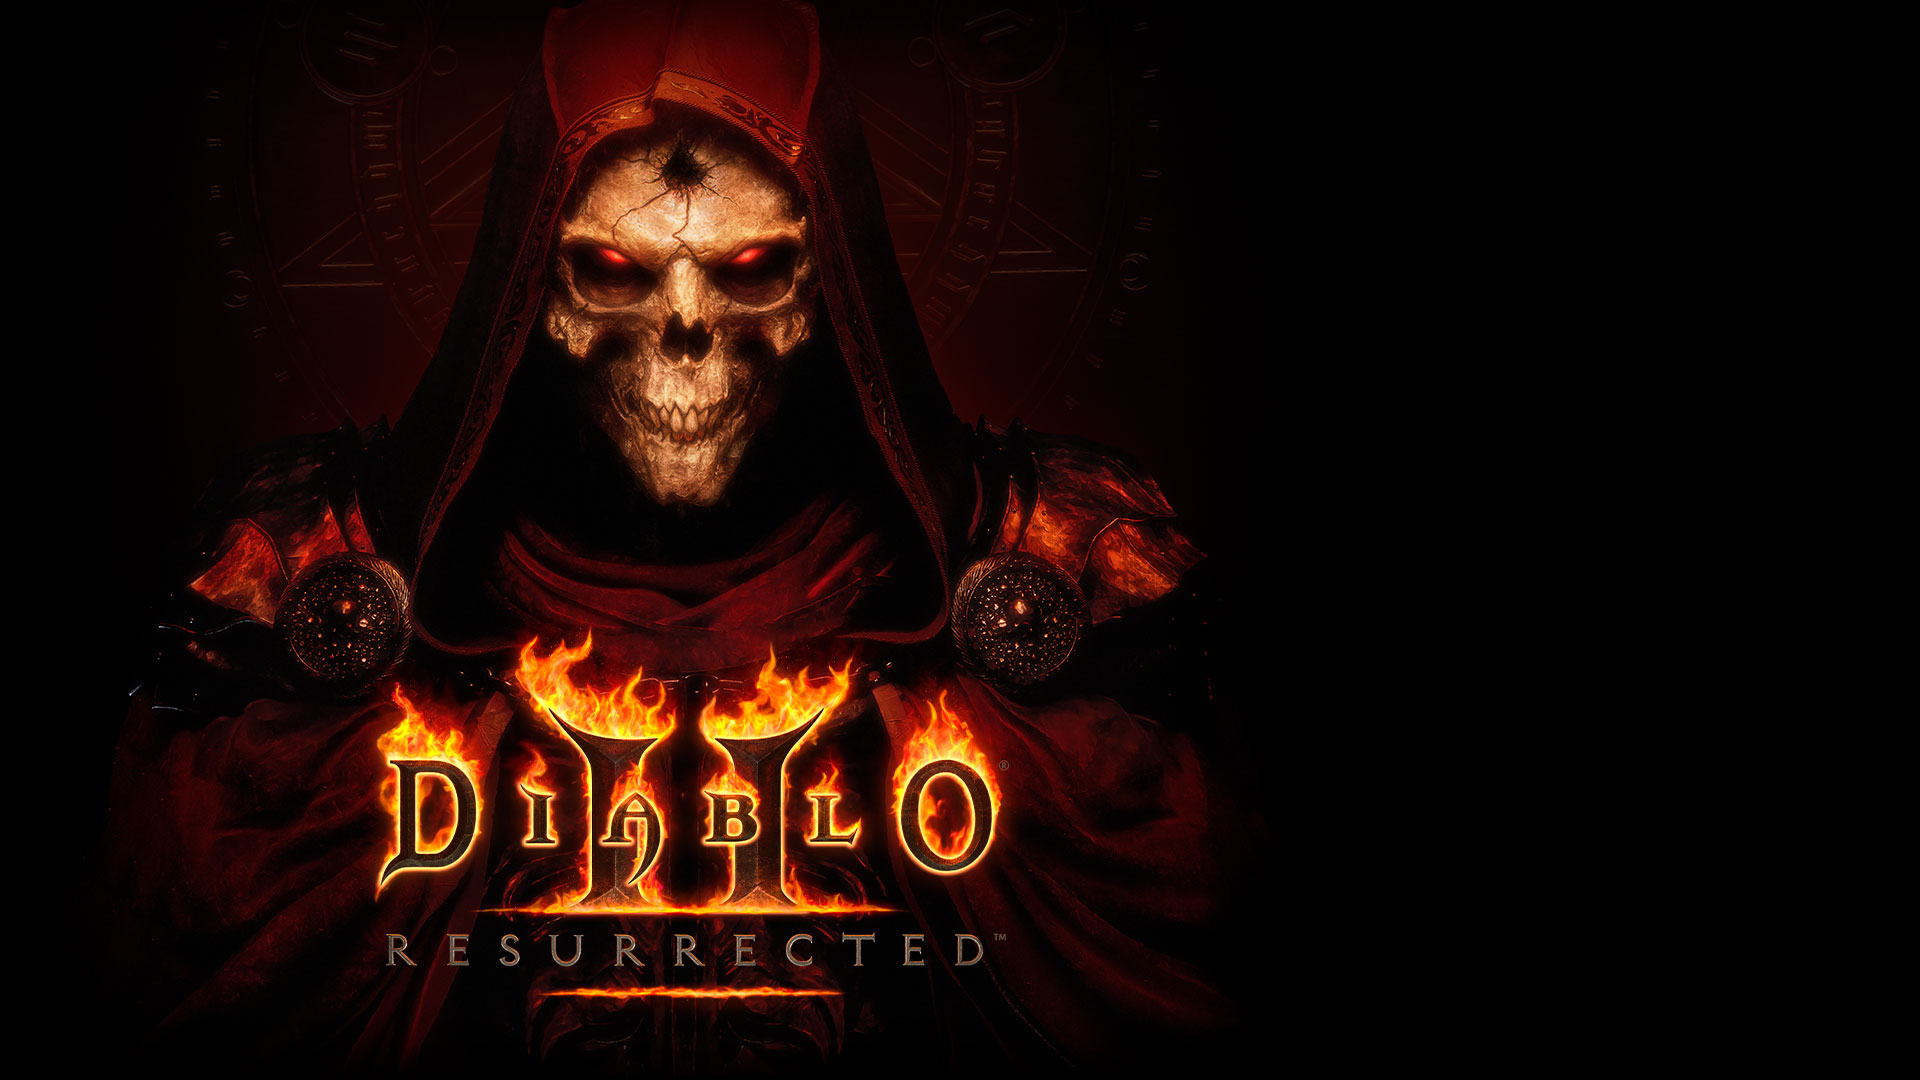 The Diablo 2: Resurrected logo over a skeleton with glowing red eyes and a dark red cape.